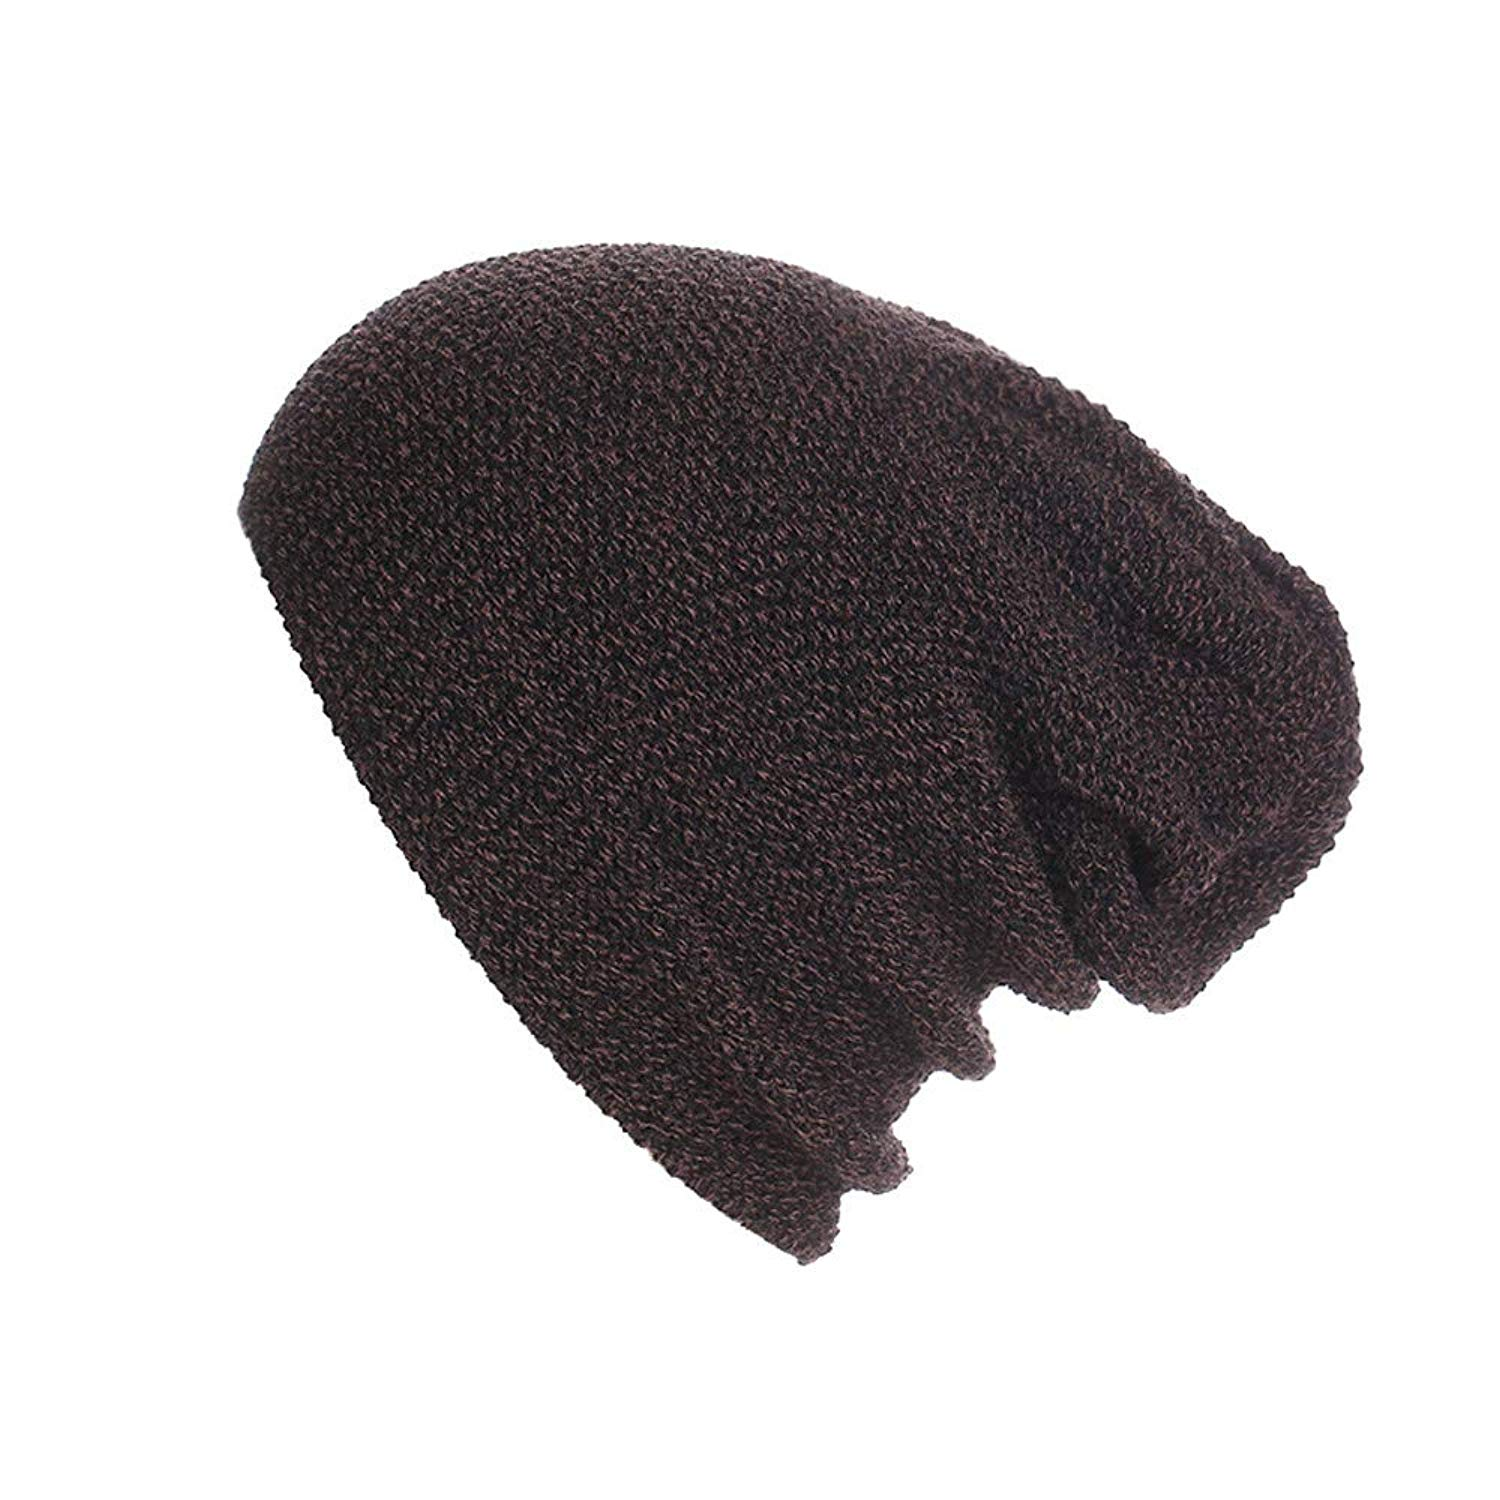 yijiamaoyiyouxia-Hats, Unisex Men's Women's Knit Wool Baggy Cap Winter Warm Hat